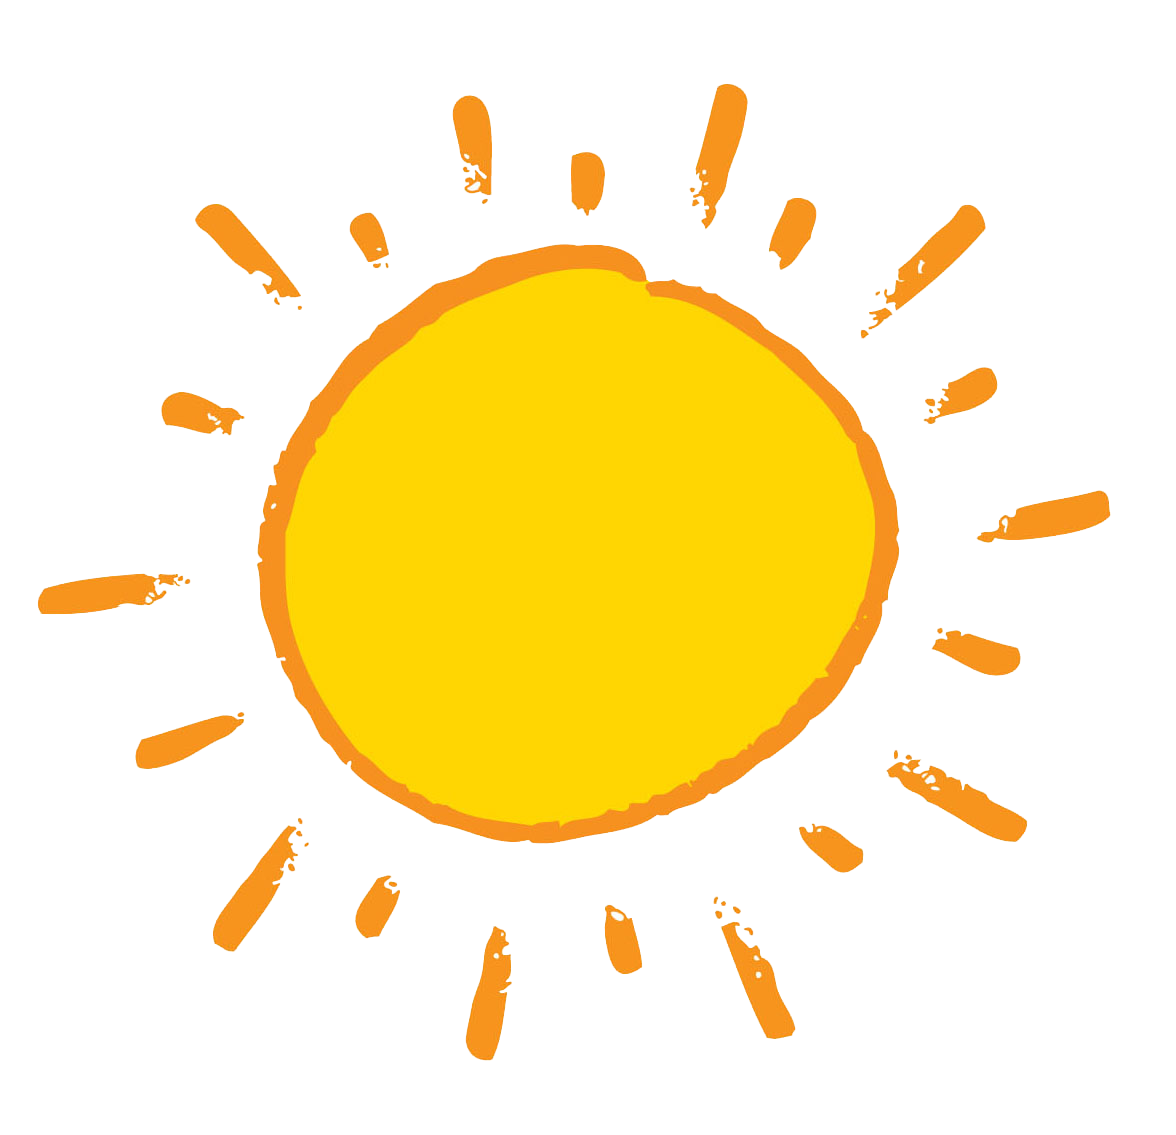 sun-icon-png-7.png